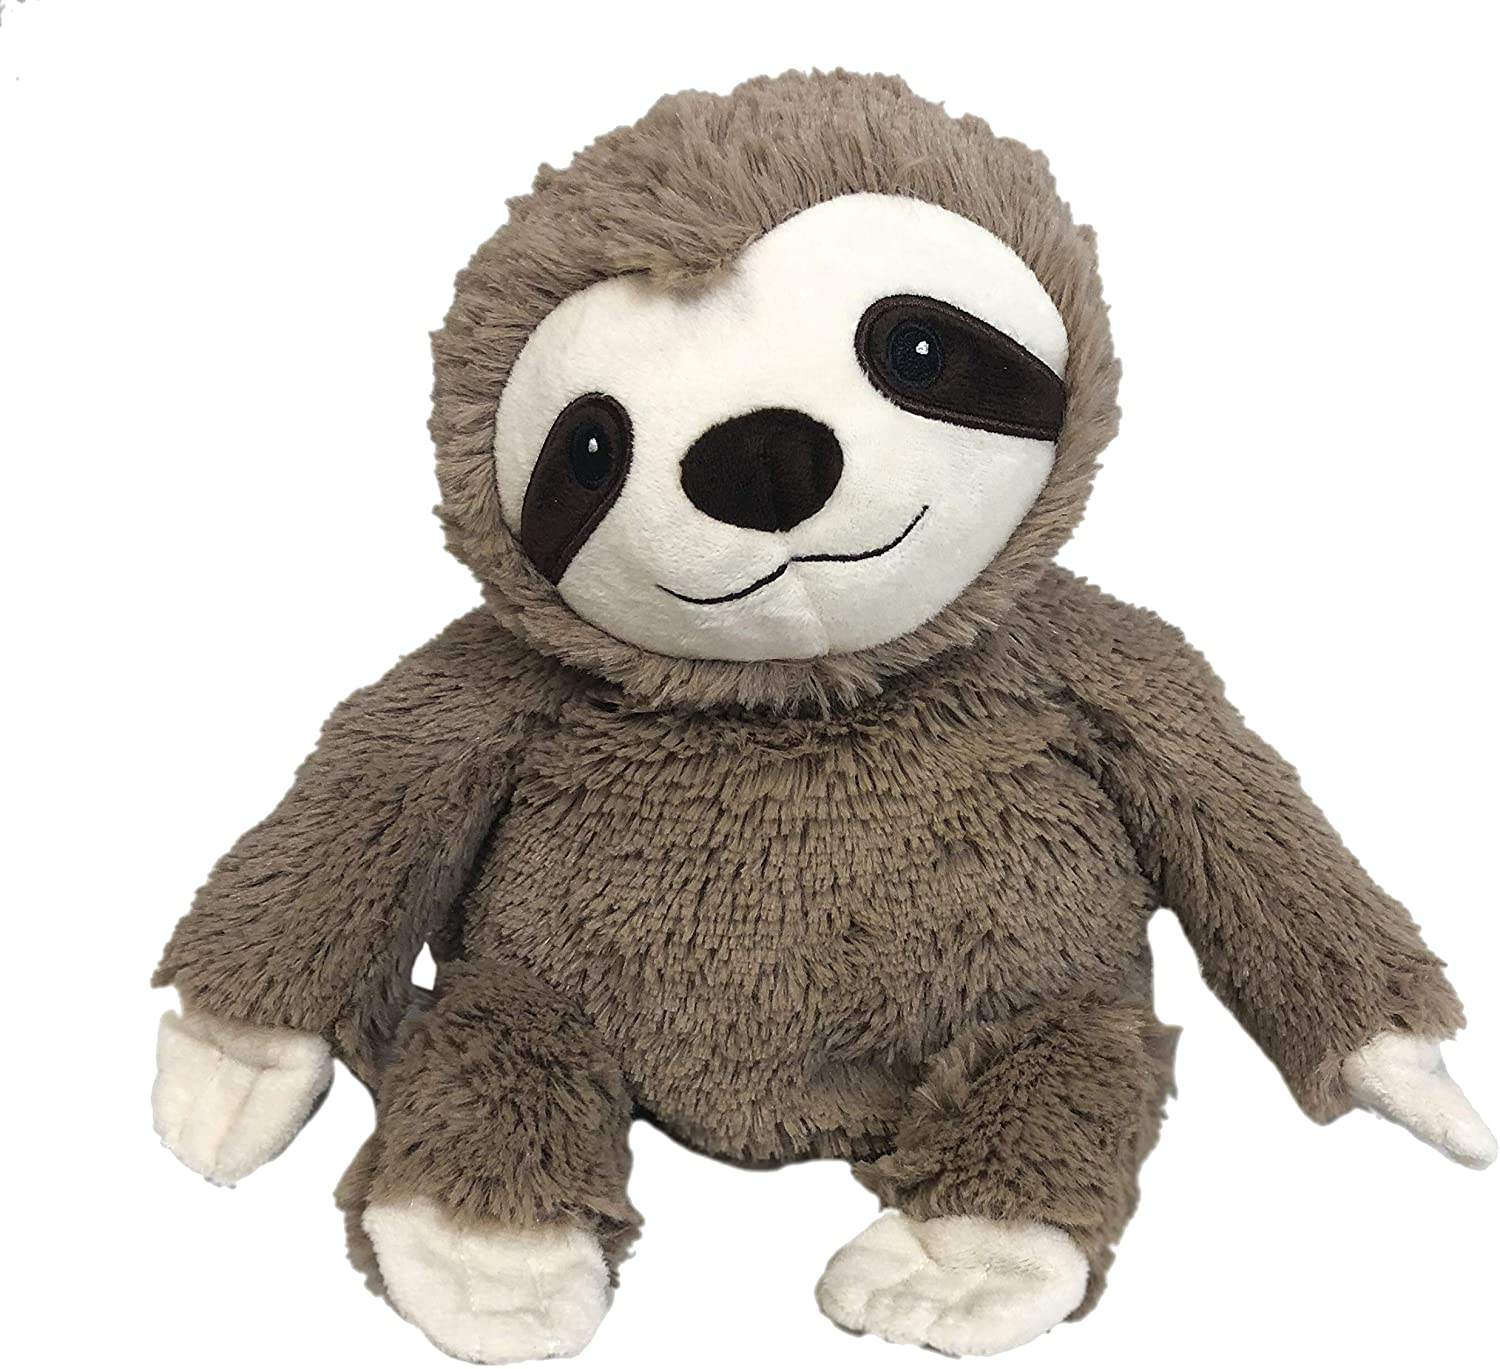 Amazon hot sale Microwavable Warm plush stuffed animals Flax seed Cozy Plush Sloth Warmies soothing warmth and comfort